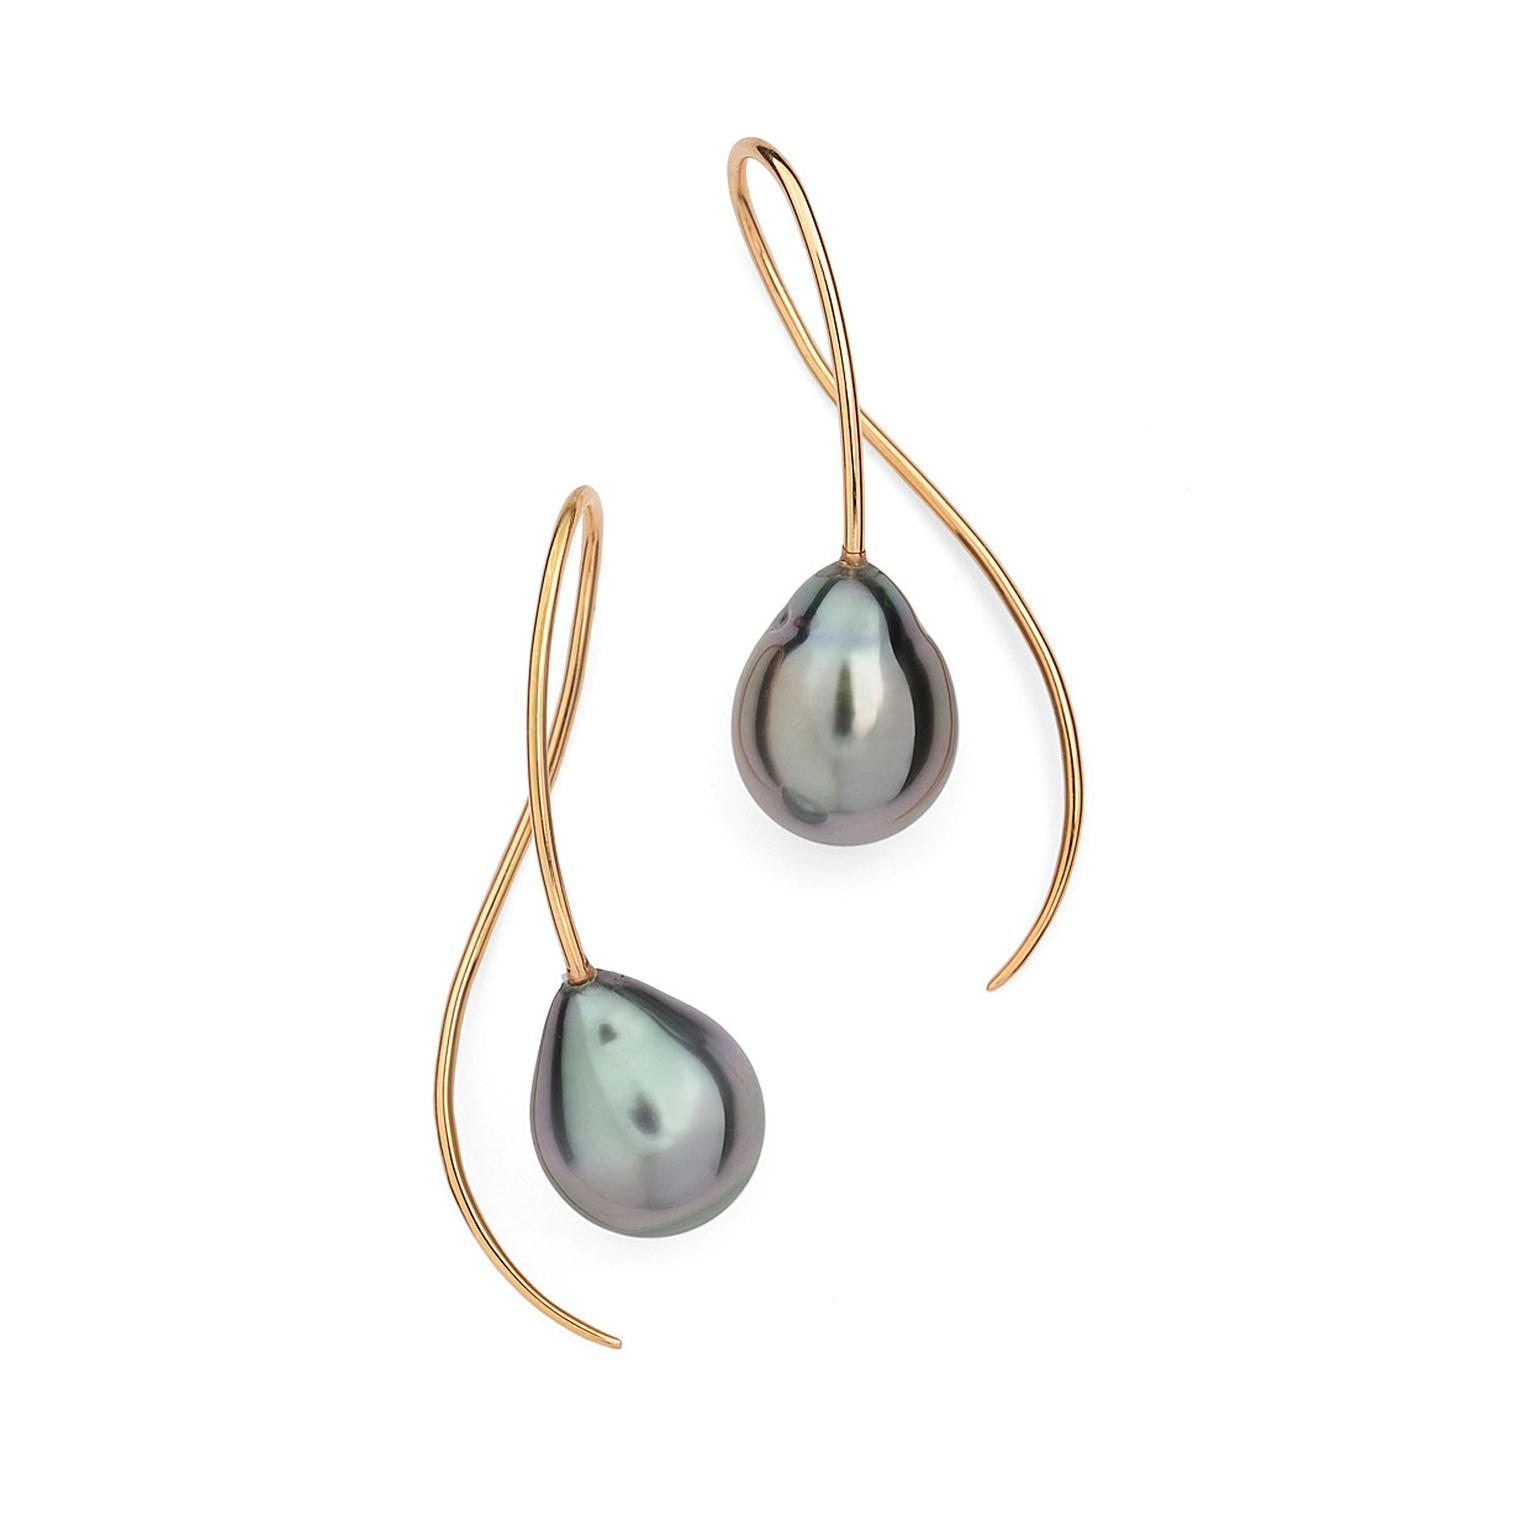 18ct rose gold and Tahitian black pearl drop earrings by McCaul Goldsmiths